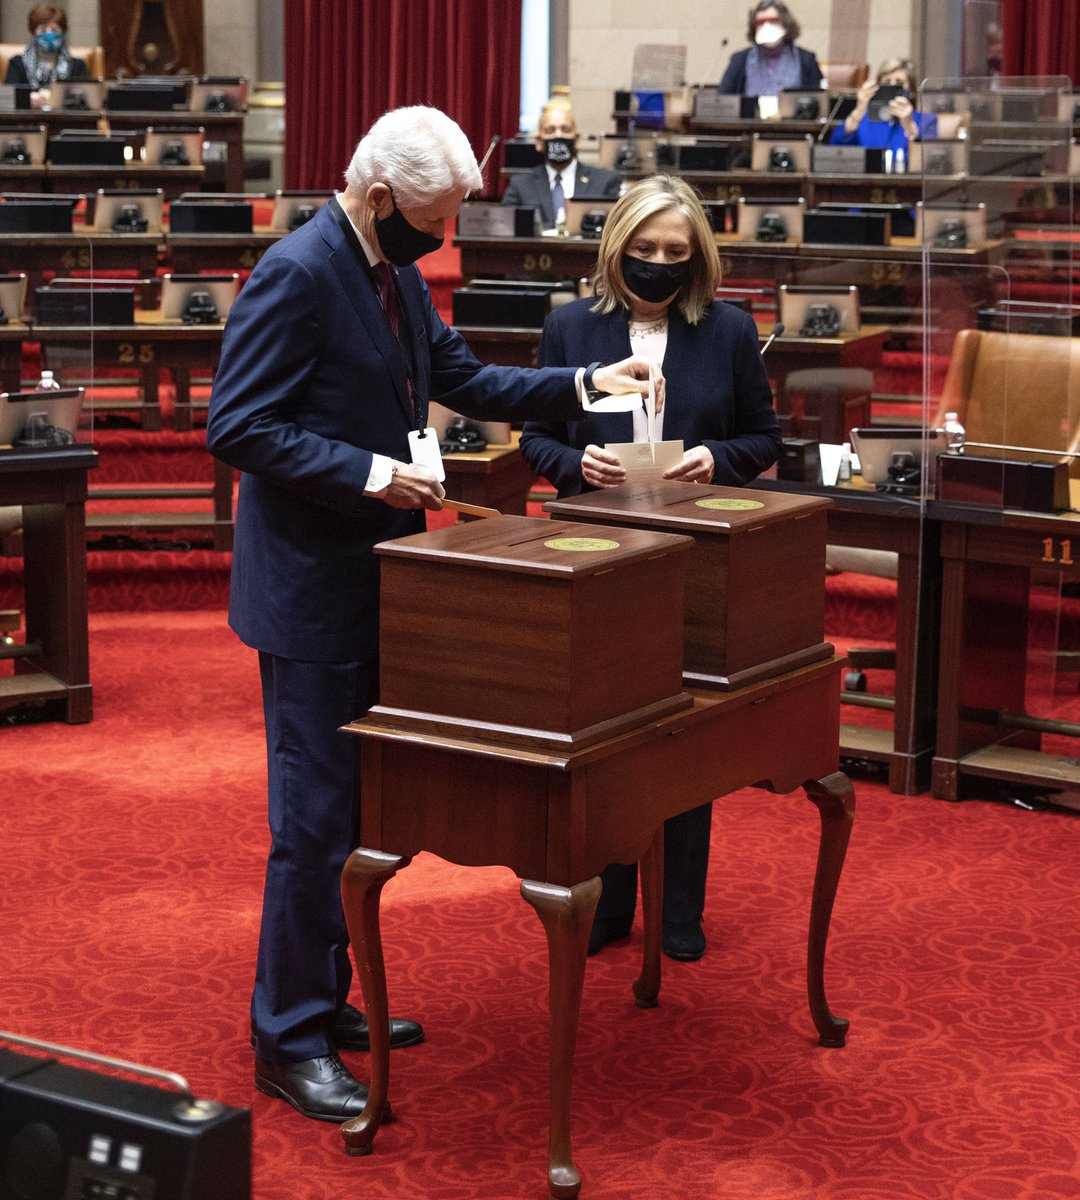 What an honor to cast one of New York's 29 electoral votes in Albany today for President-elect Biden and Vice President-elect Harris.